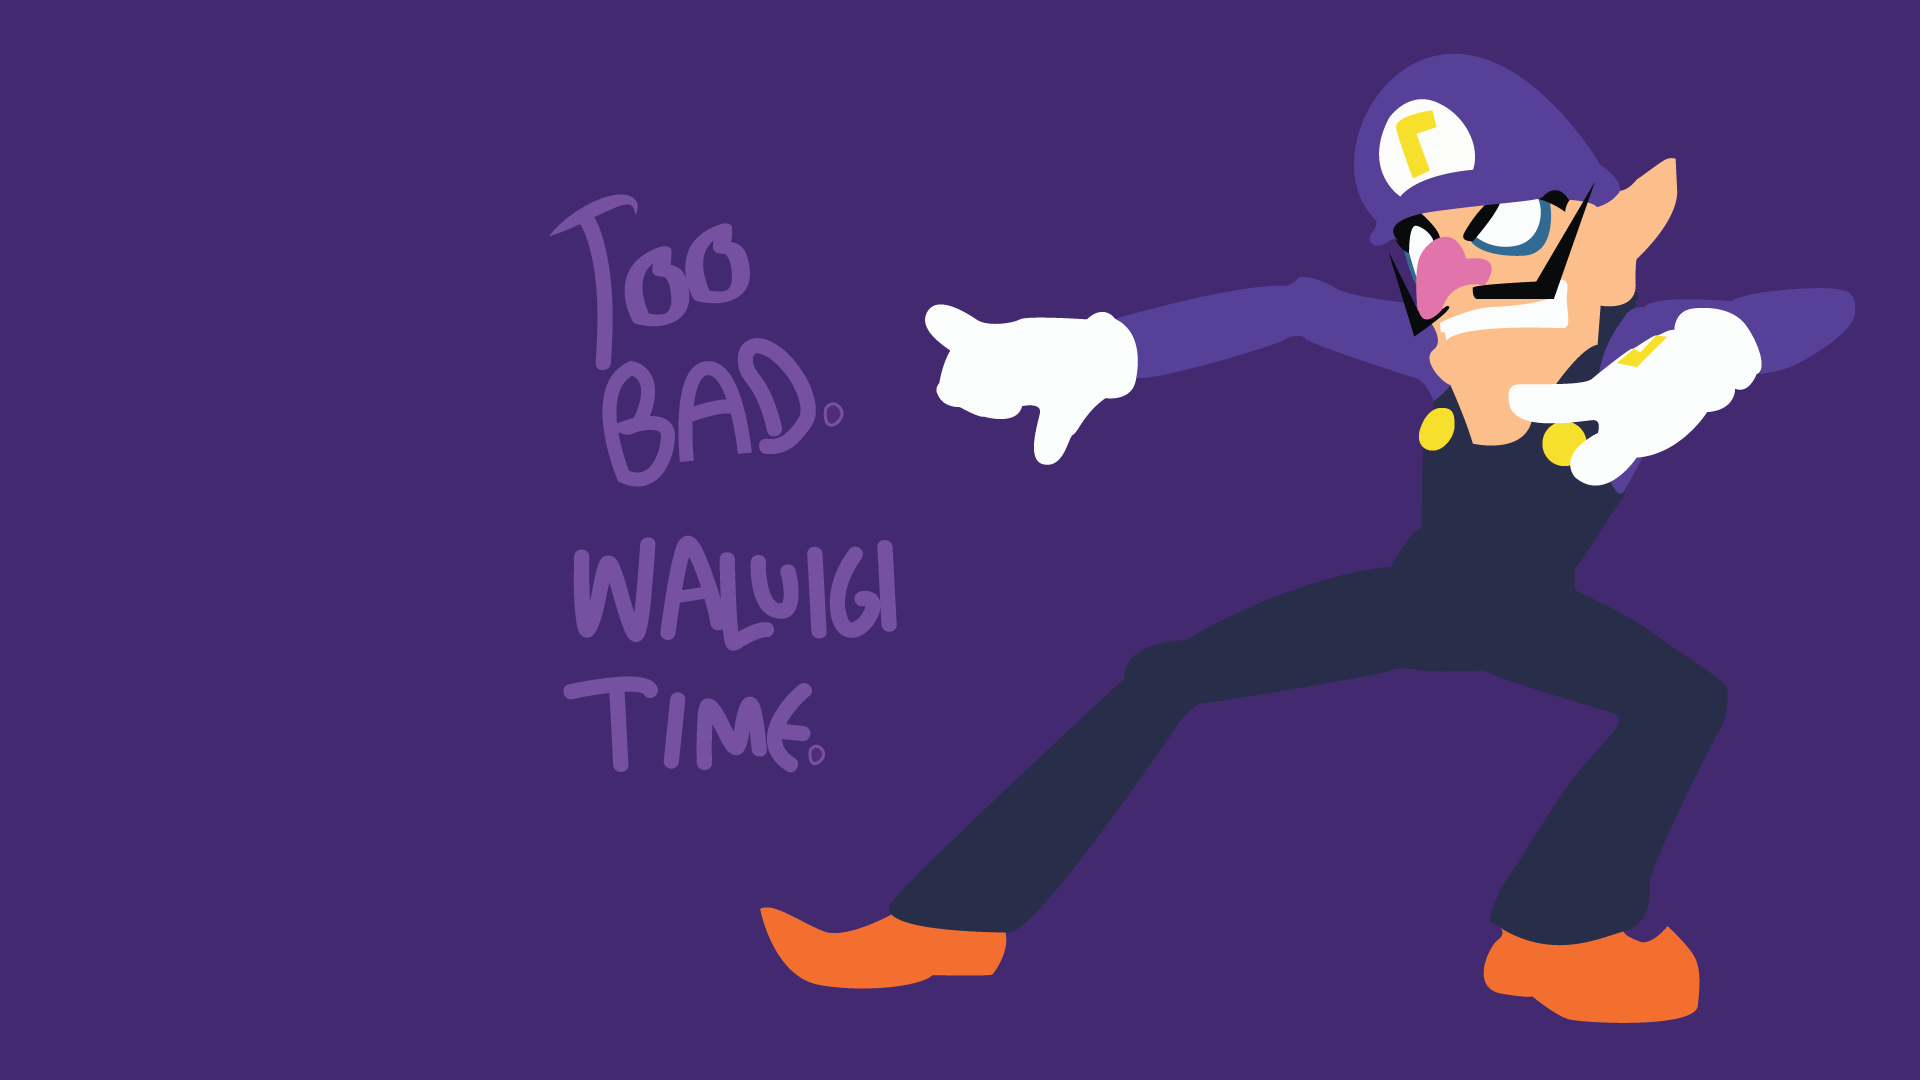 Waluigi Wallpaper